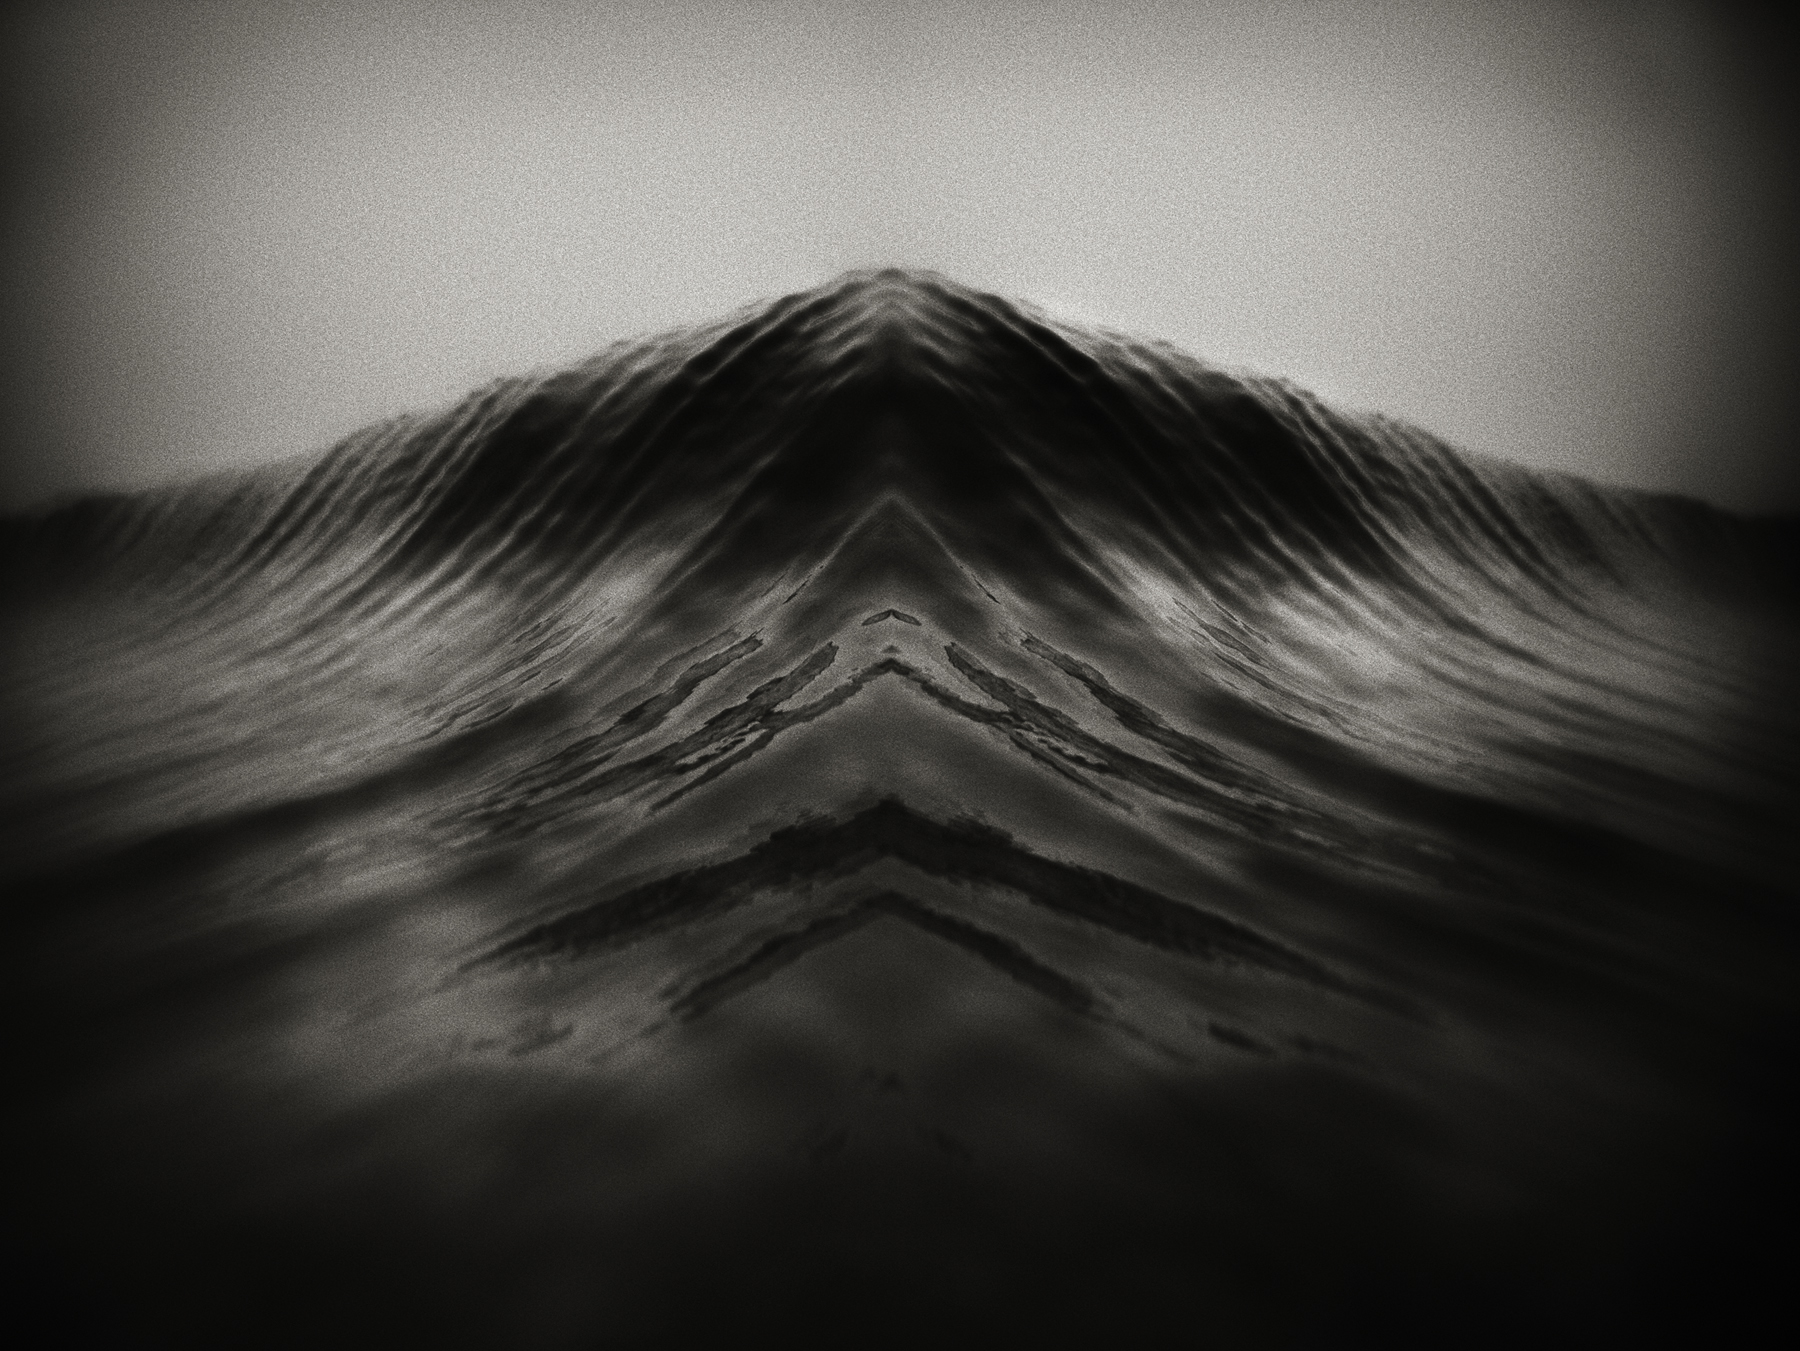 Jacob Felländer   Before the deep sea sleeps it all begins Before calling your name Before seeing your face again. I'm waking up  2017 Archival Pigment Print 20 x 26 cm Edition 3+1